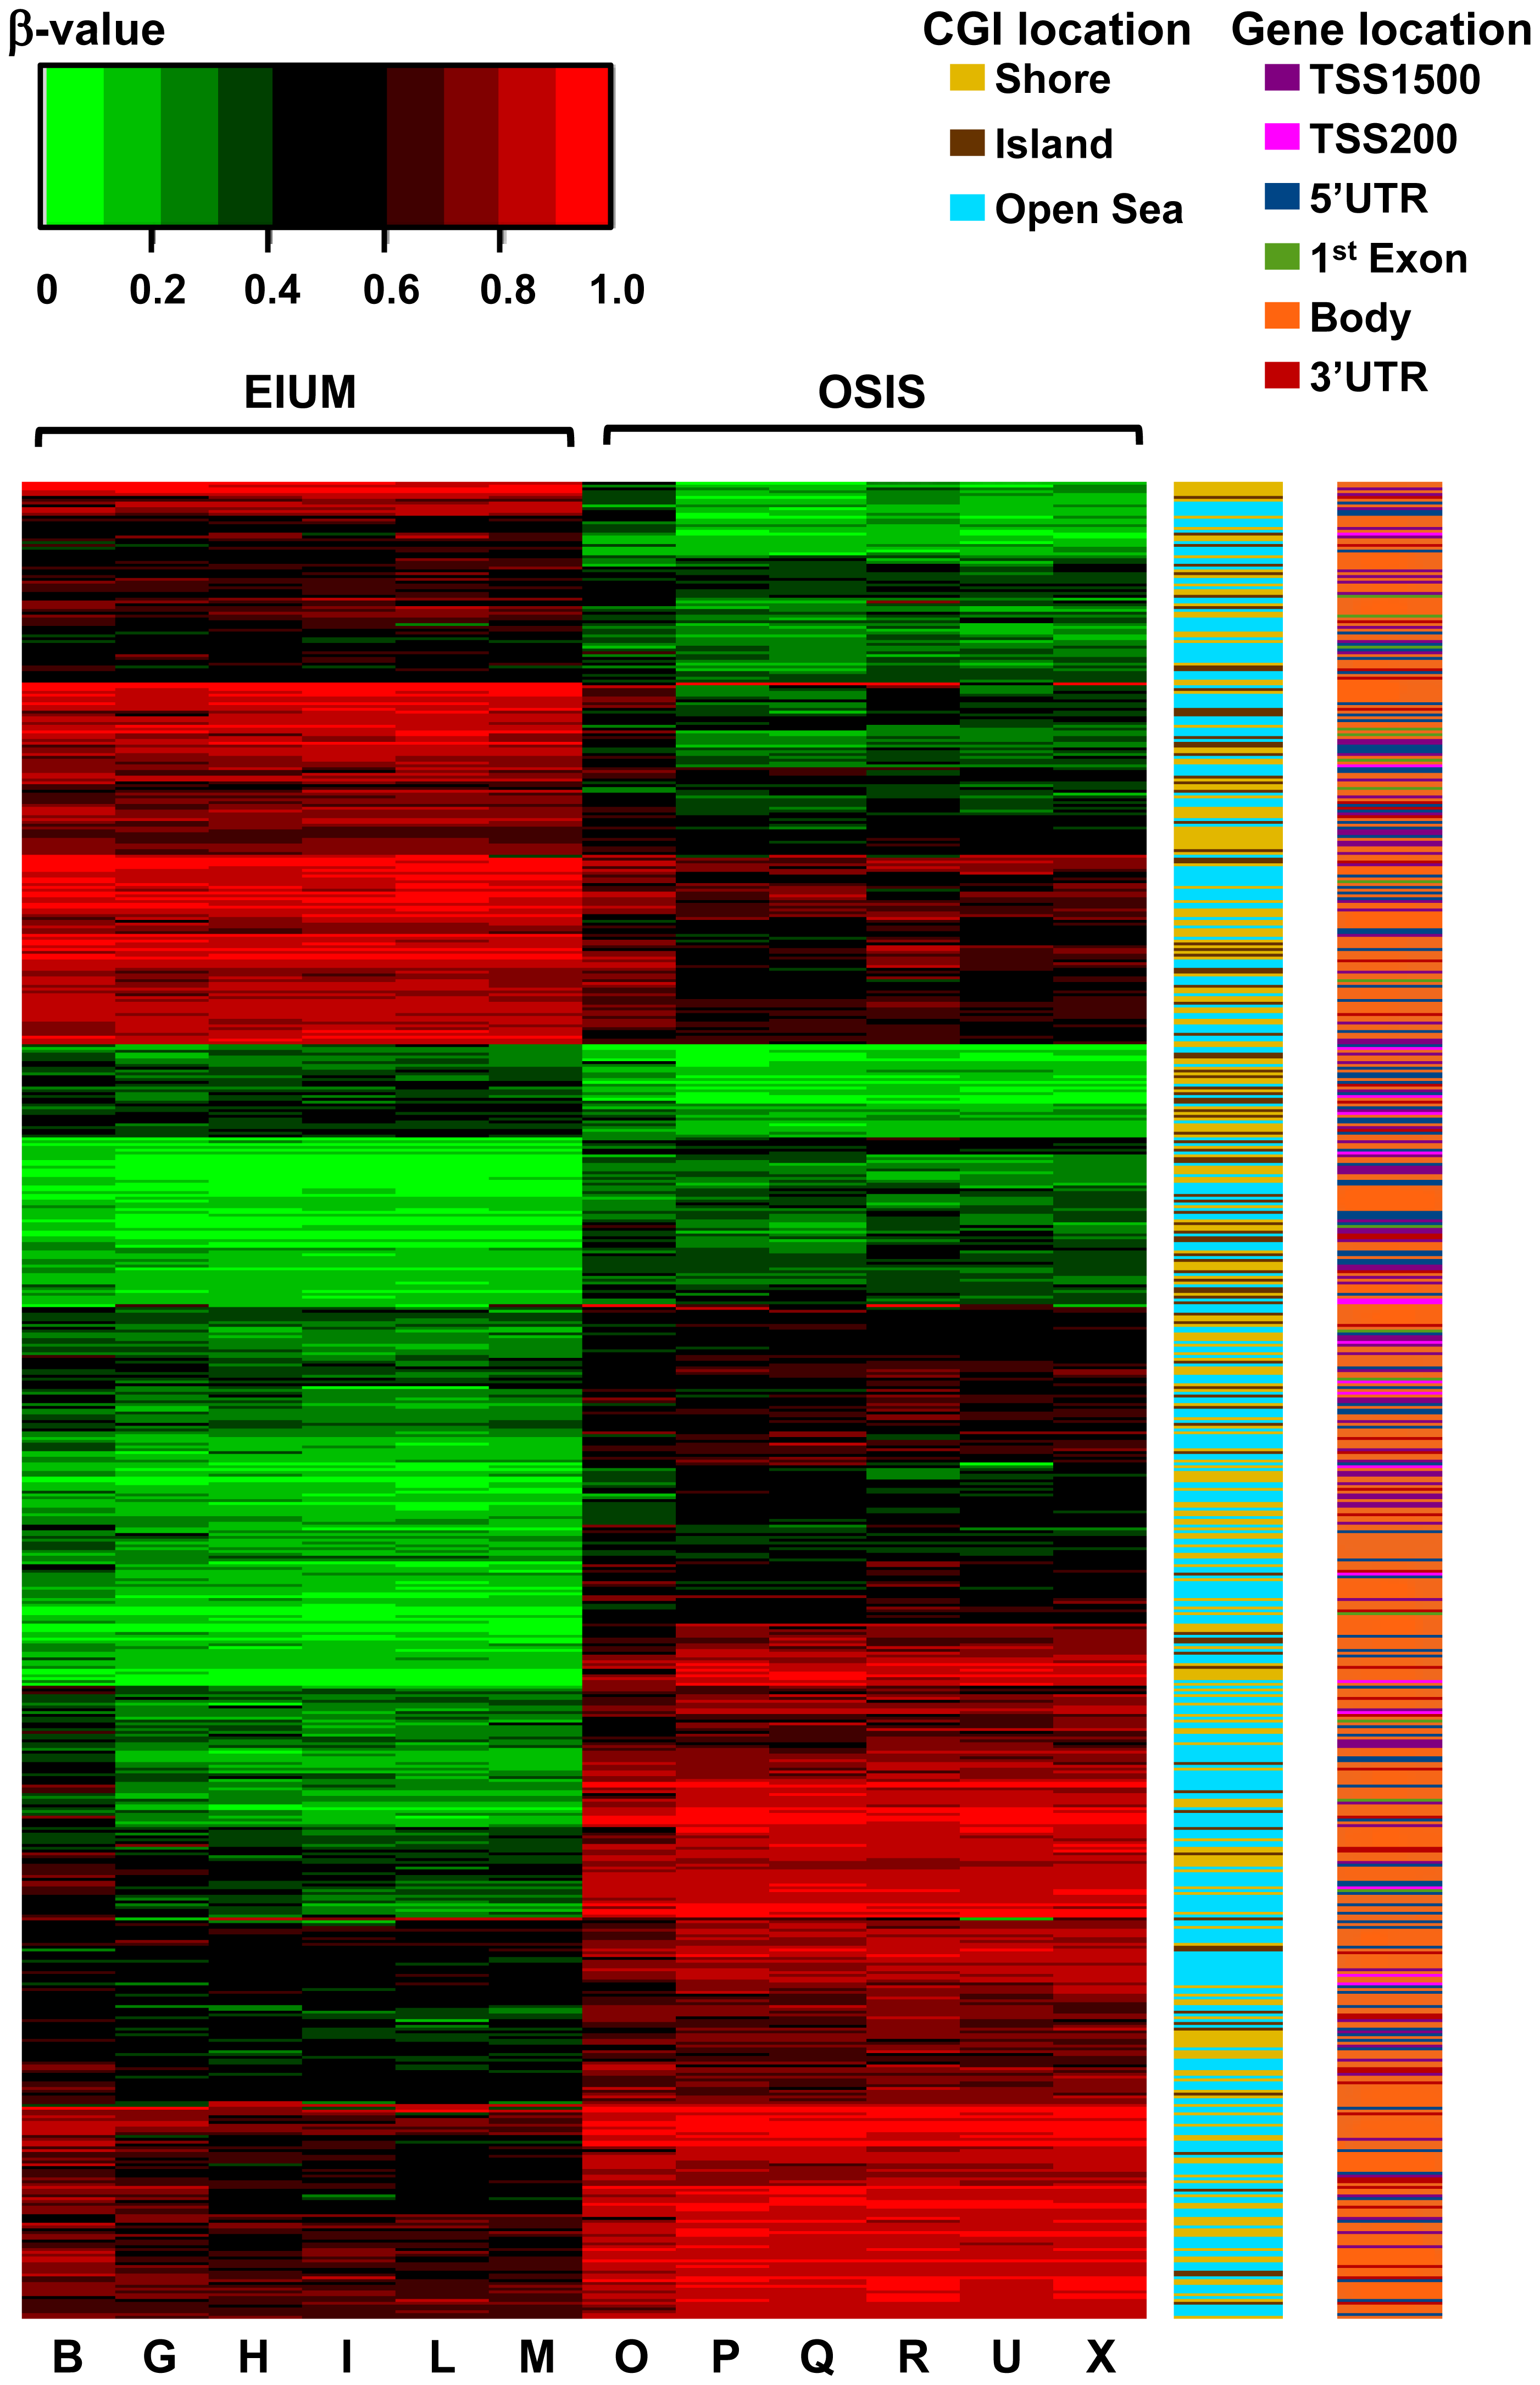 A combined heat map shows the differential methylation of the 5,423 matched CpGs in conjunction with gene and CGI context for EIUM and OSIS.